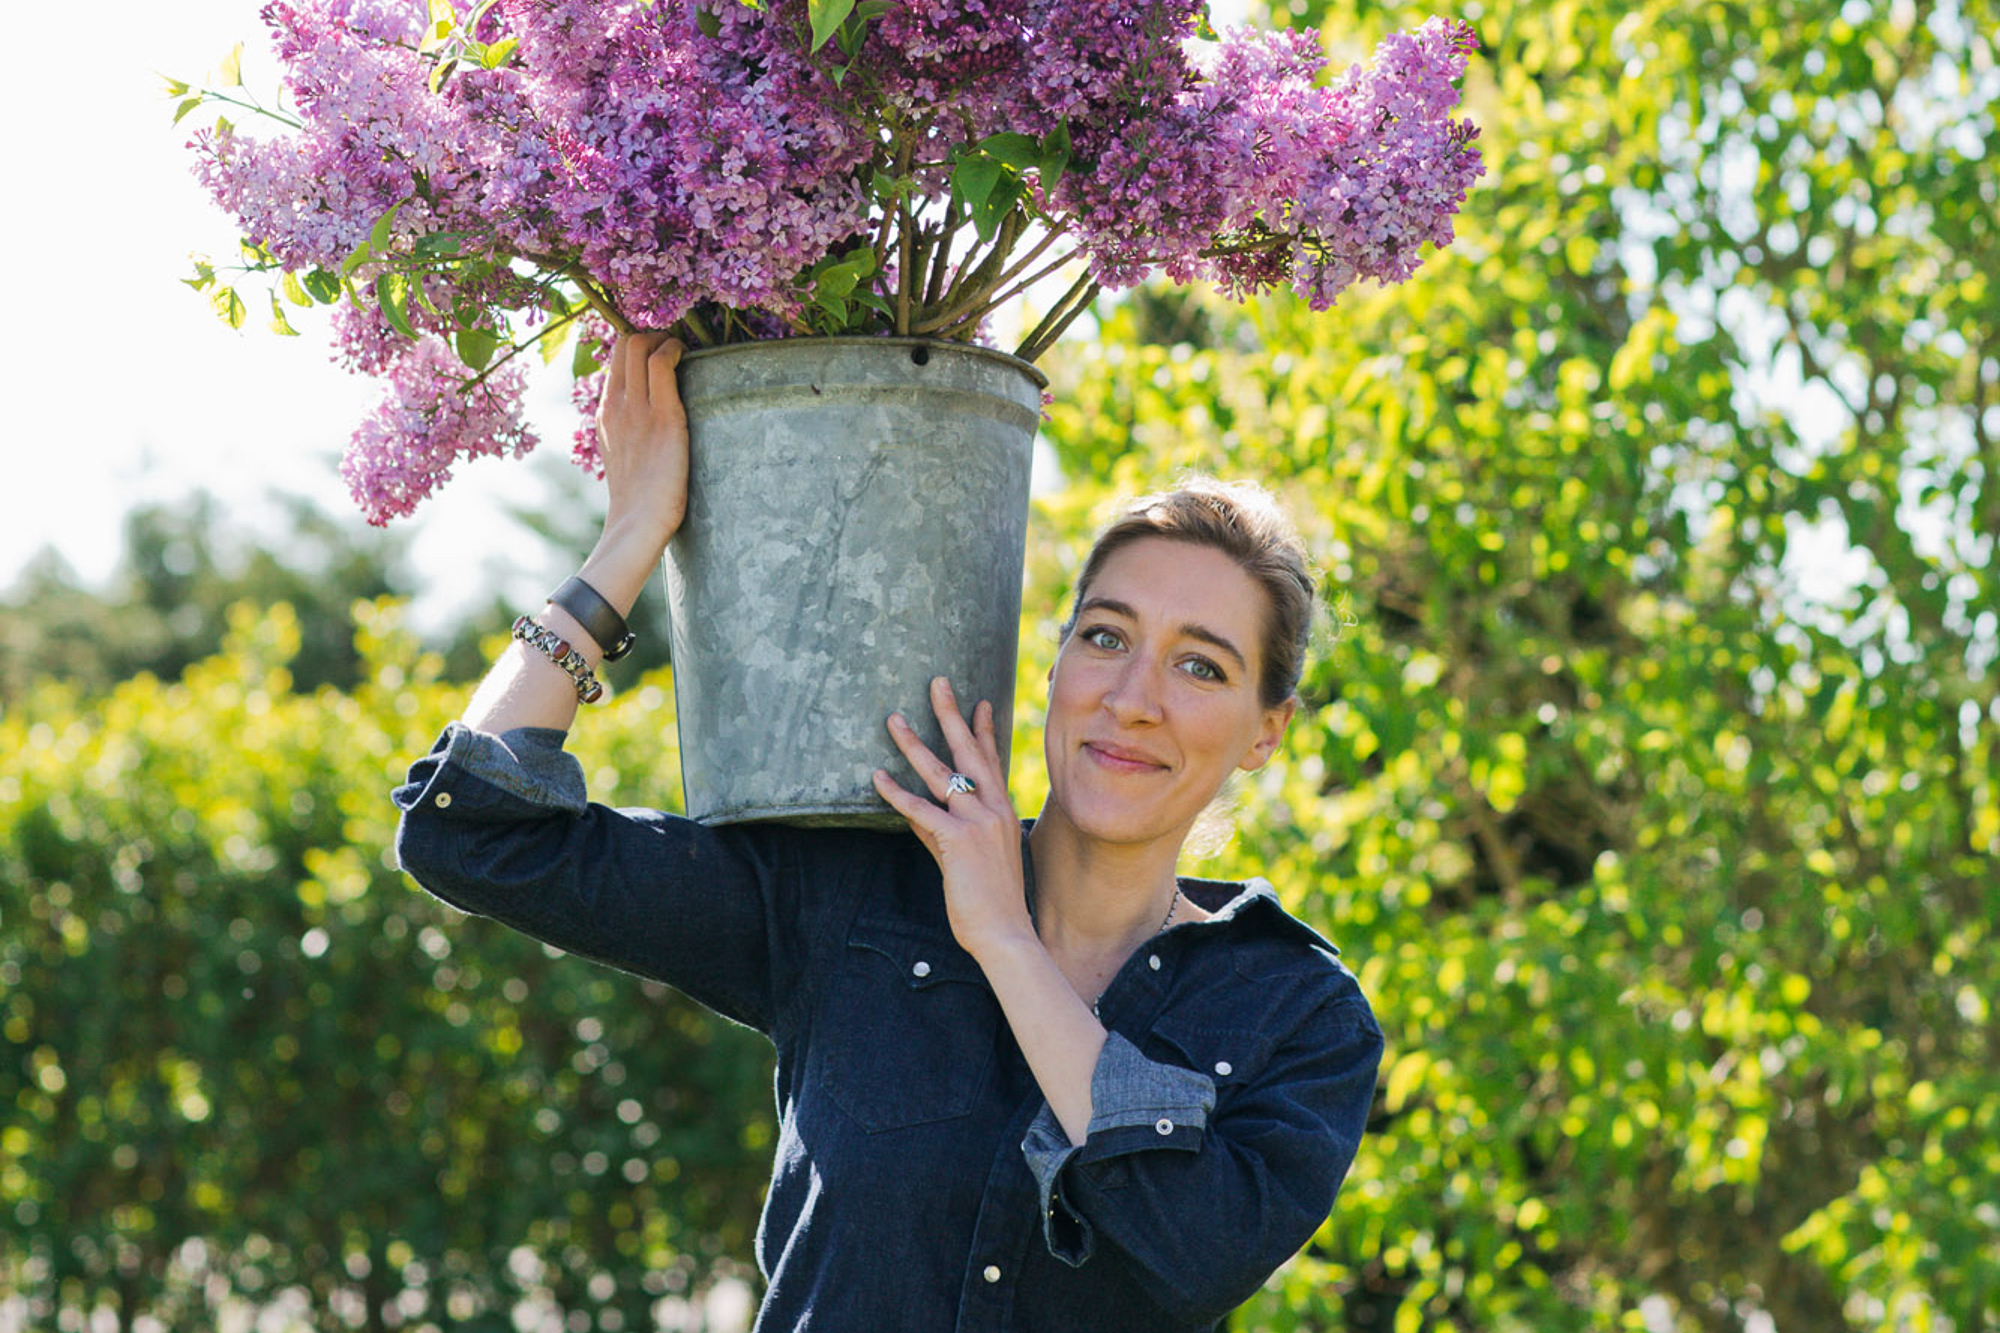 Erin Benzakein balancing a bucket of lilacs on her shoulder